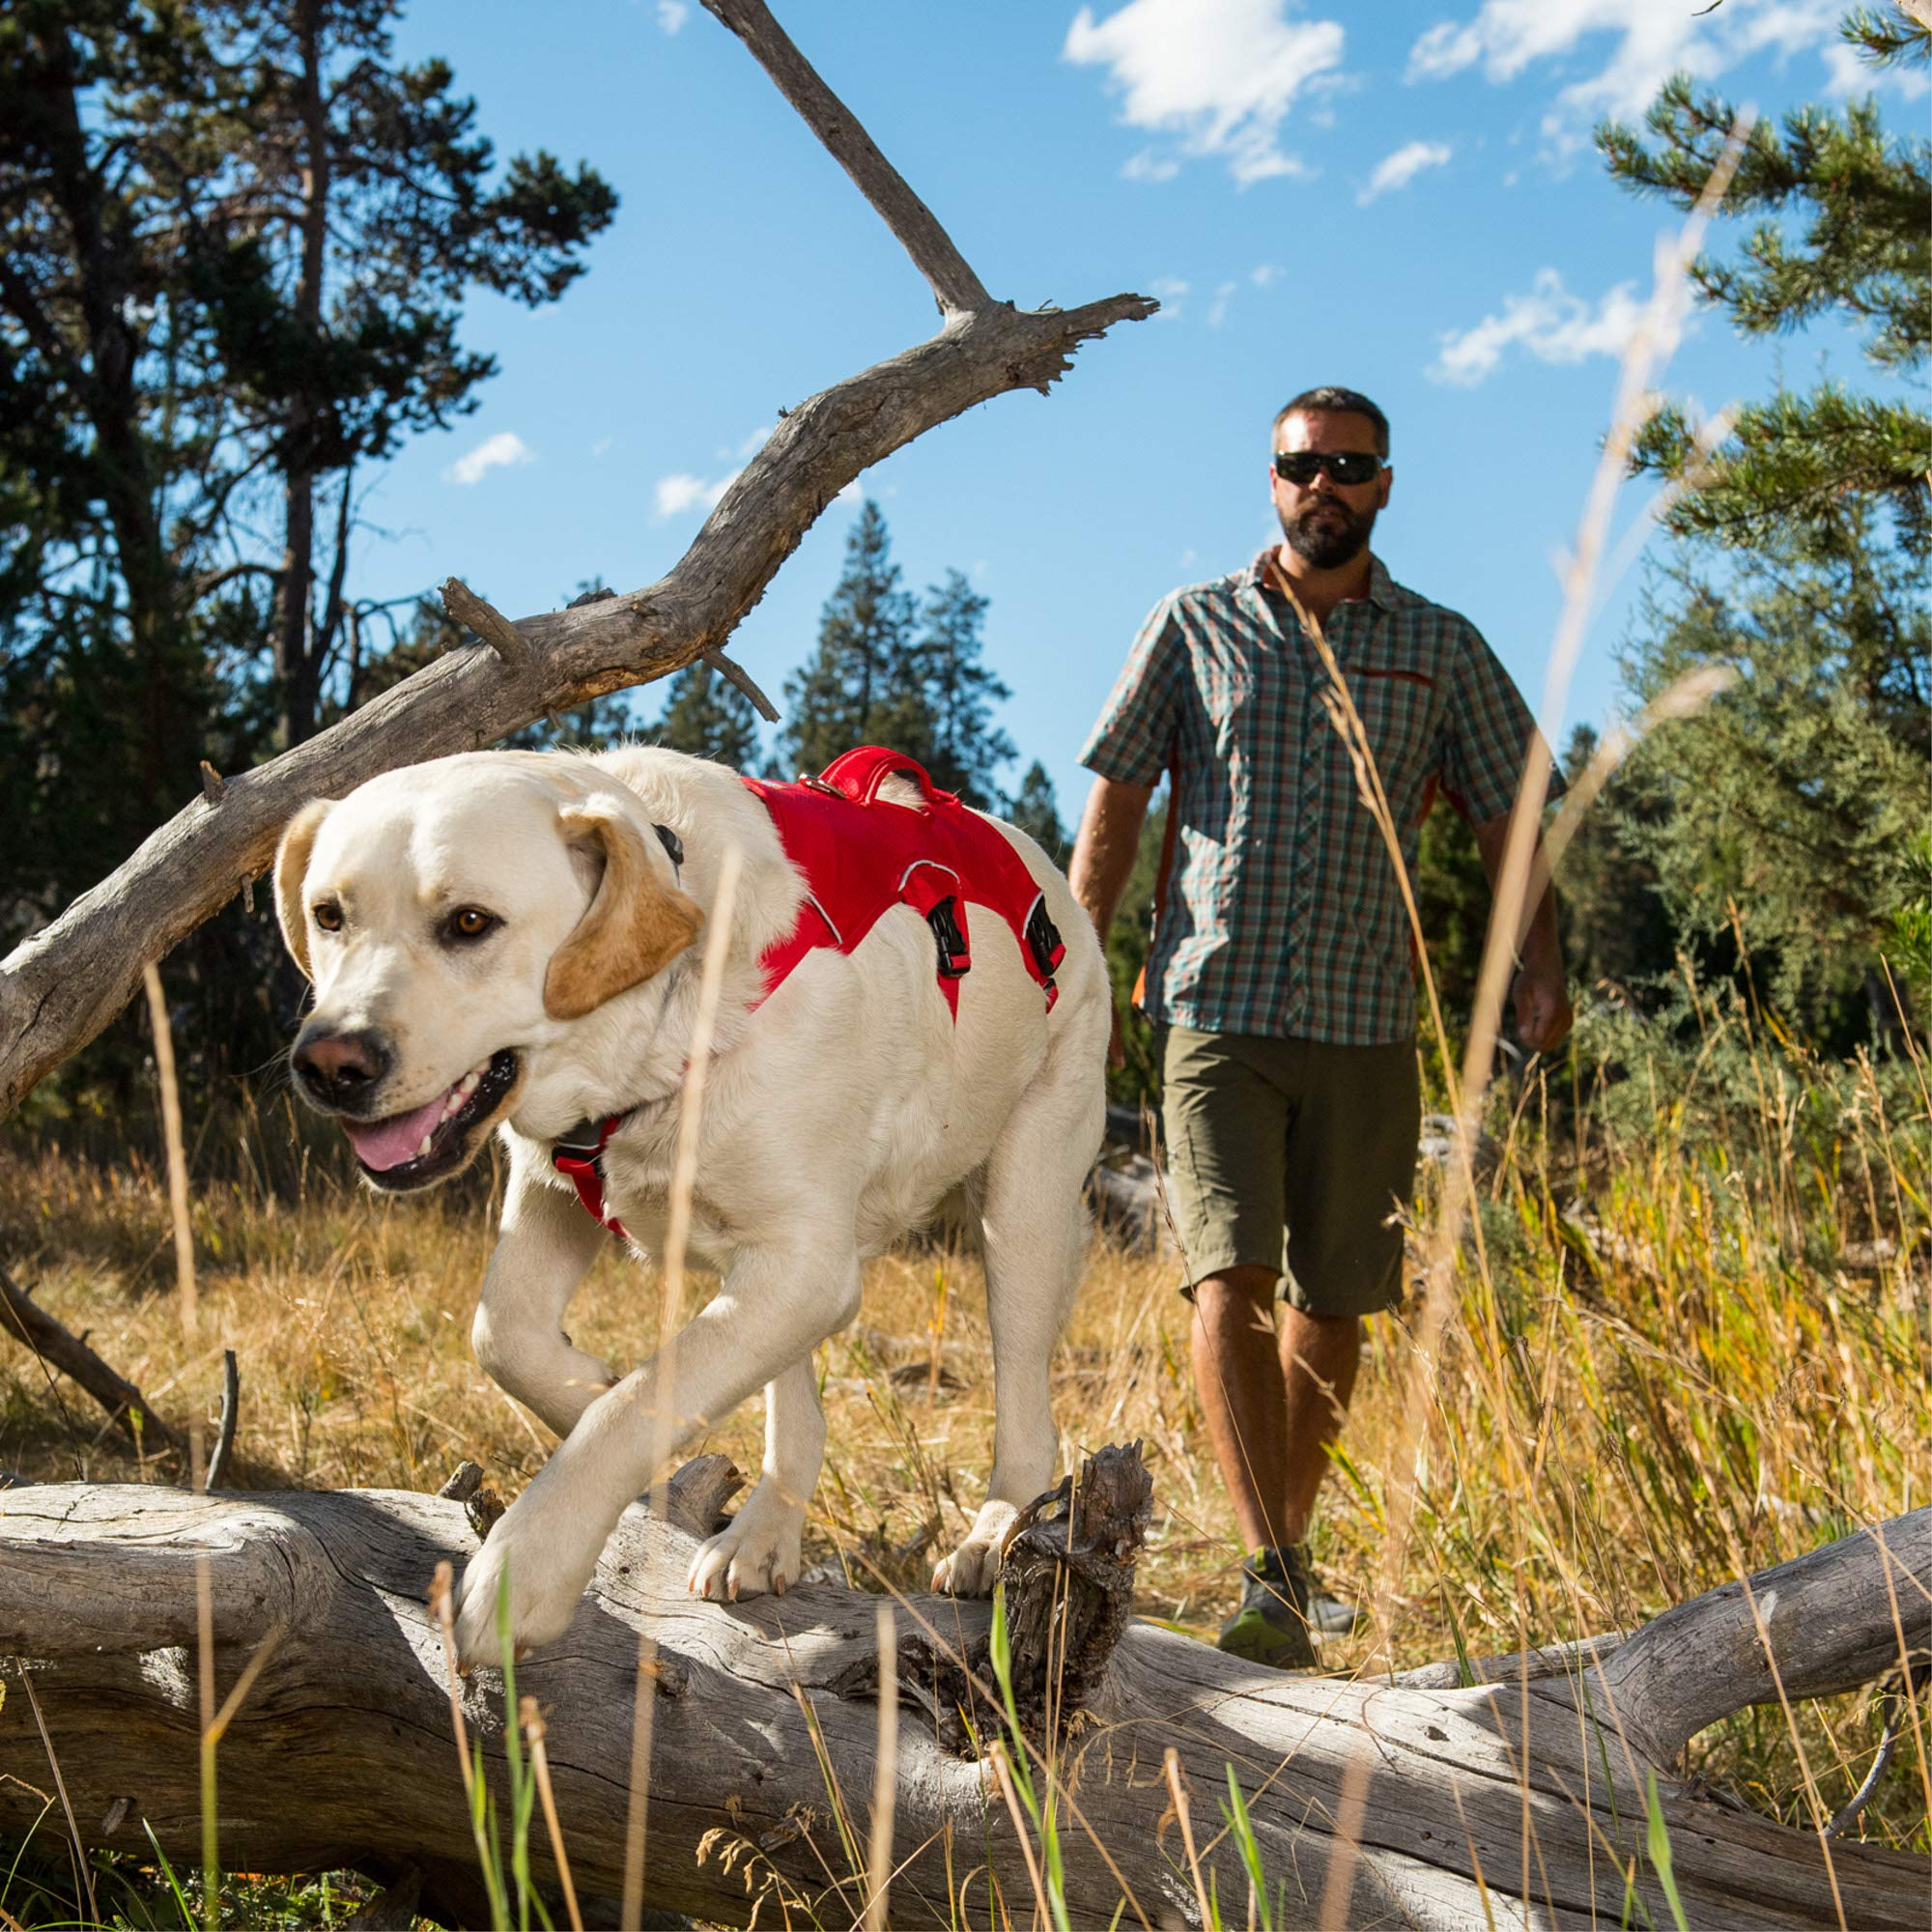 RUFFWEAR - Web Master, Multi-Use Support Dog Harness, Hiking and Trail Running, Service and Working, Everyday Wear, Red Currant, X-Small by RUFFWEAR (Image #9)